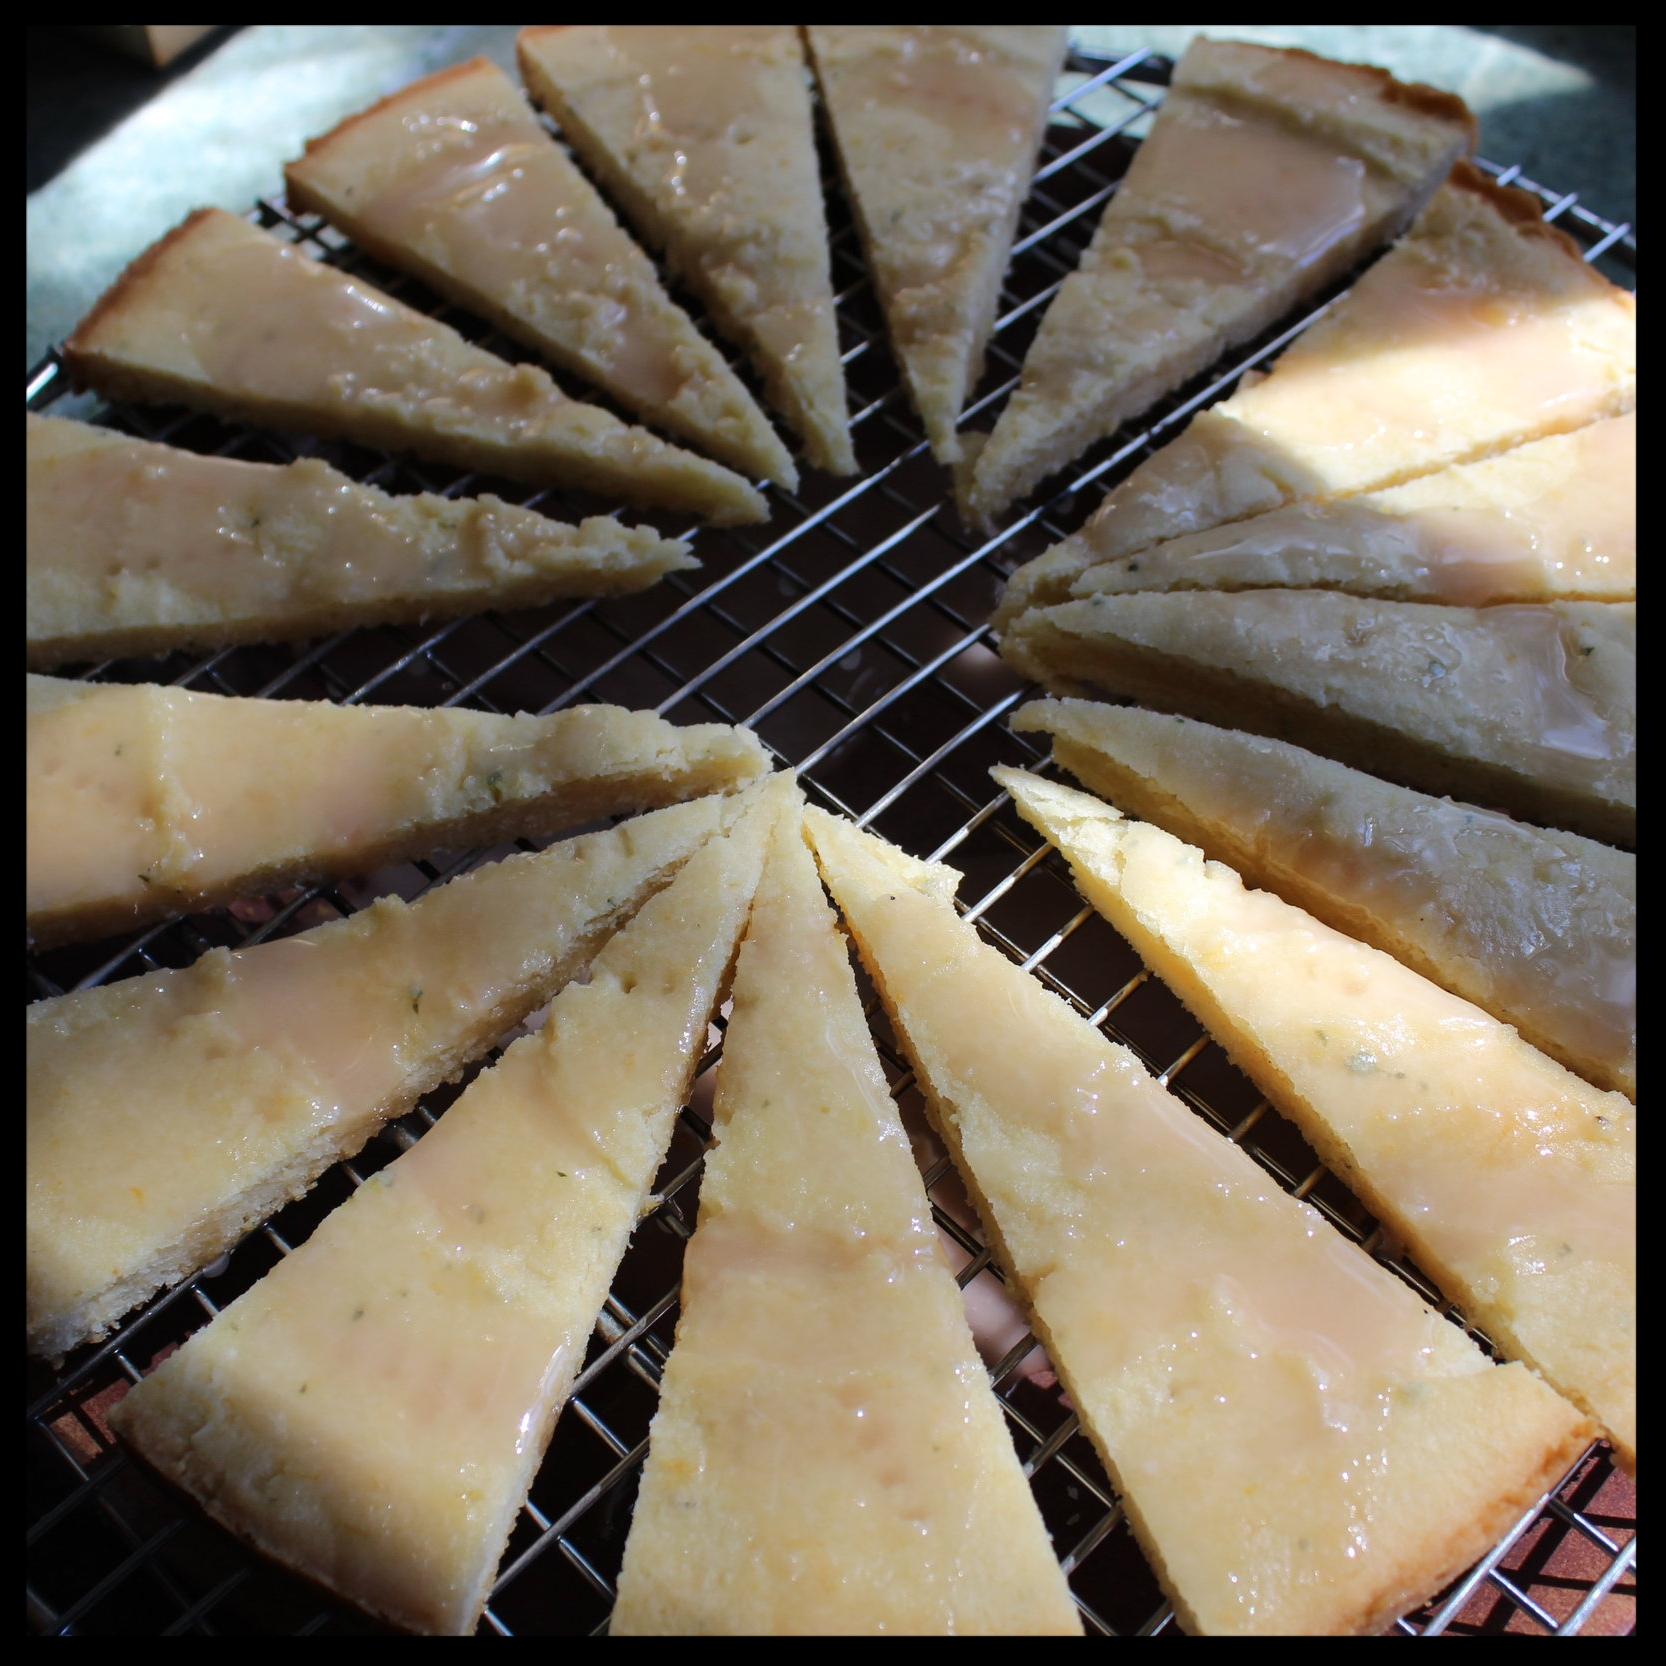 11. Remove the collar from the pan. Immediately cut the shortbread into 8 or 16 wedges.  12. Transfer wedges to a cooling rack set over a plate.  13. Drizzle the glaze evenly over the shortbread, and gently spread to the edges with an offset spatula. Once cool you can serve it!